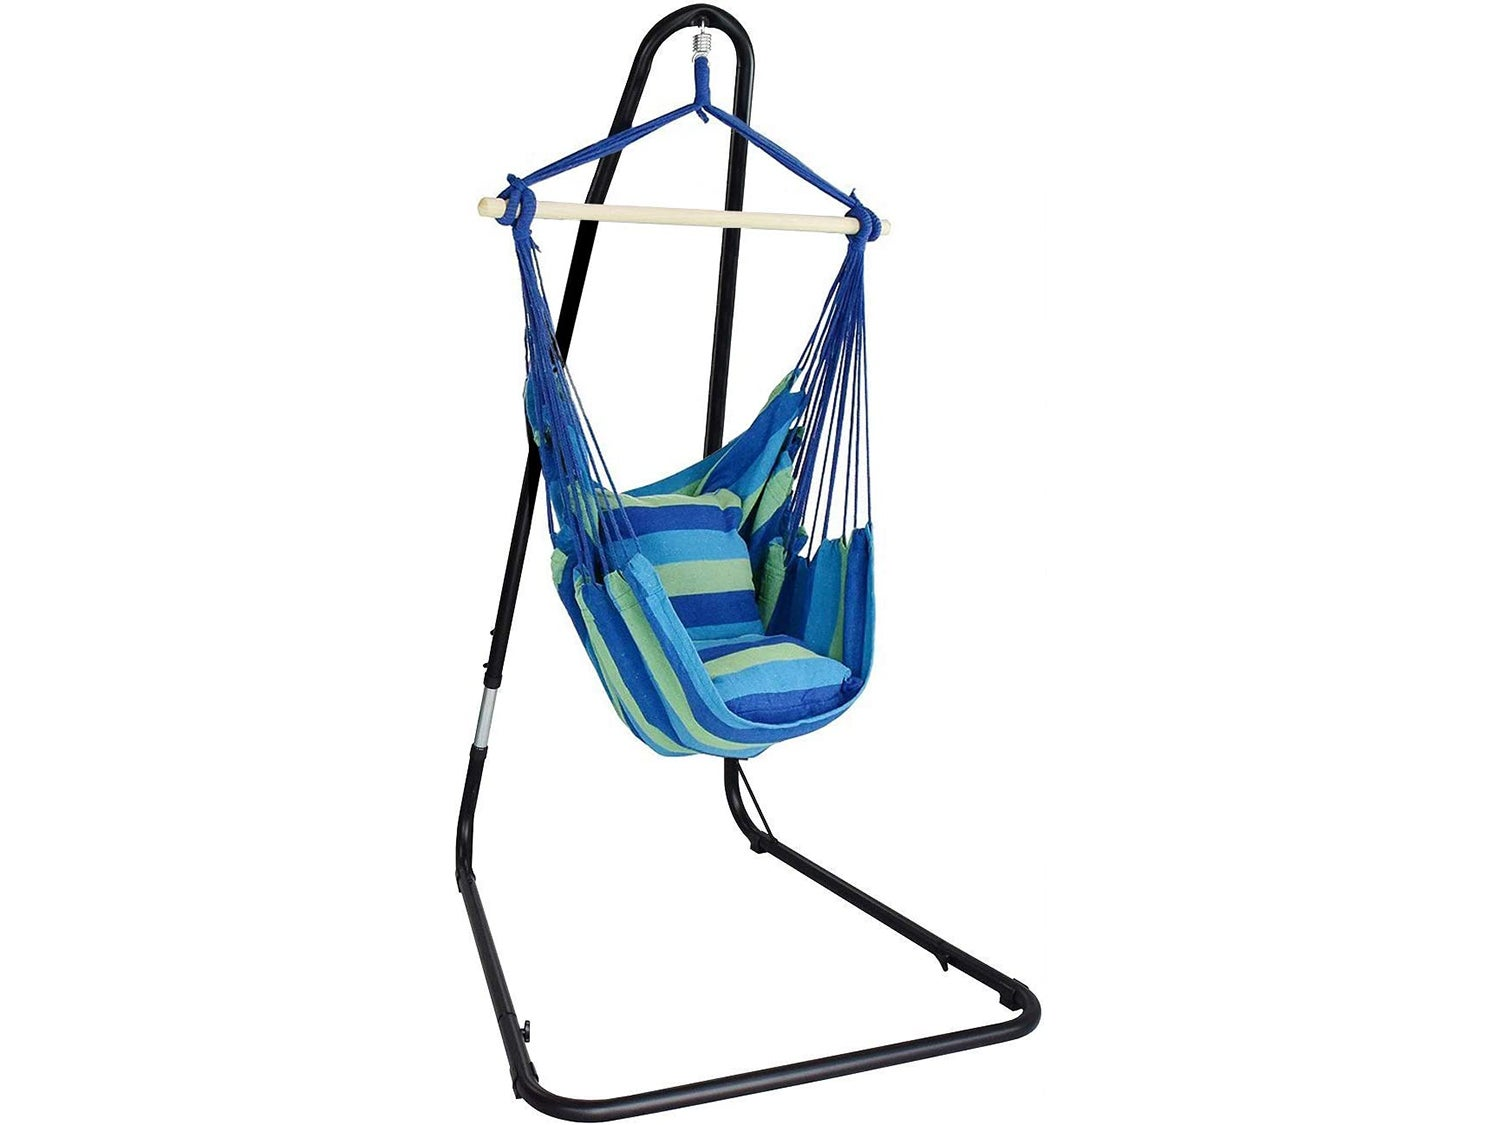 Hanging Rope Hammock Chair Swing with Space Saving Stand for Indoor or Outdoor Patio, Yard, Porch, and Bedroom